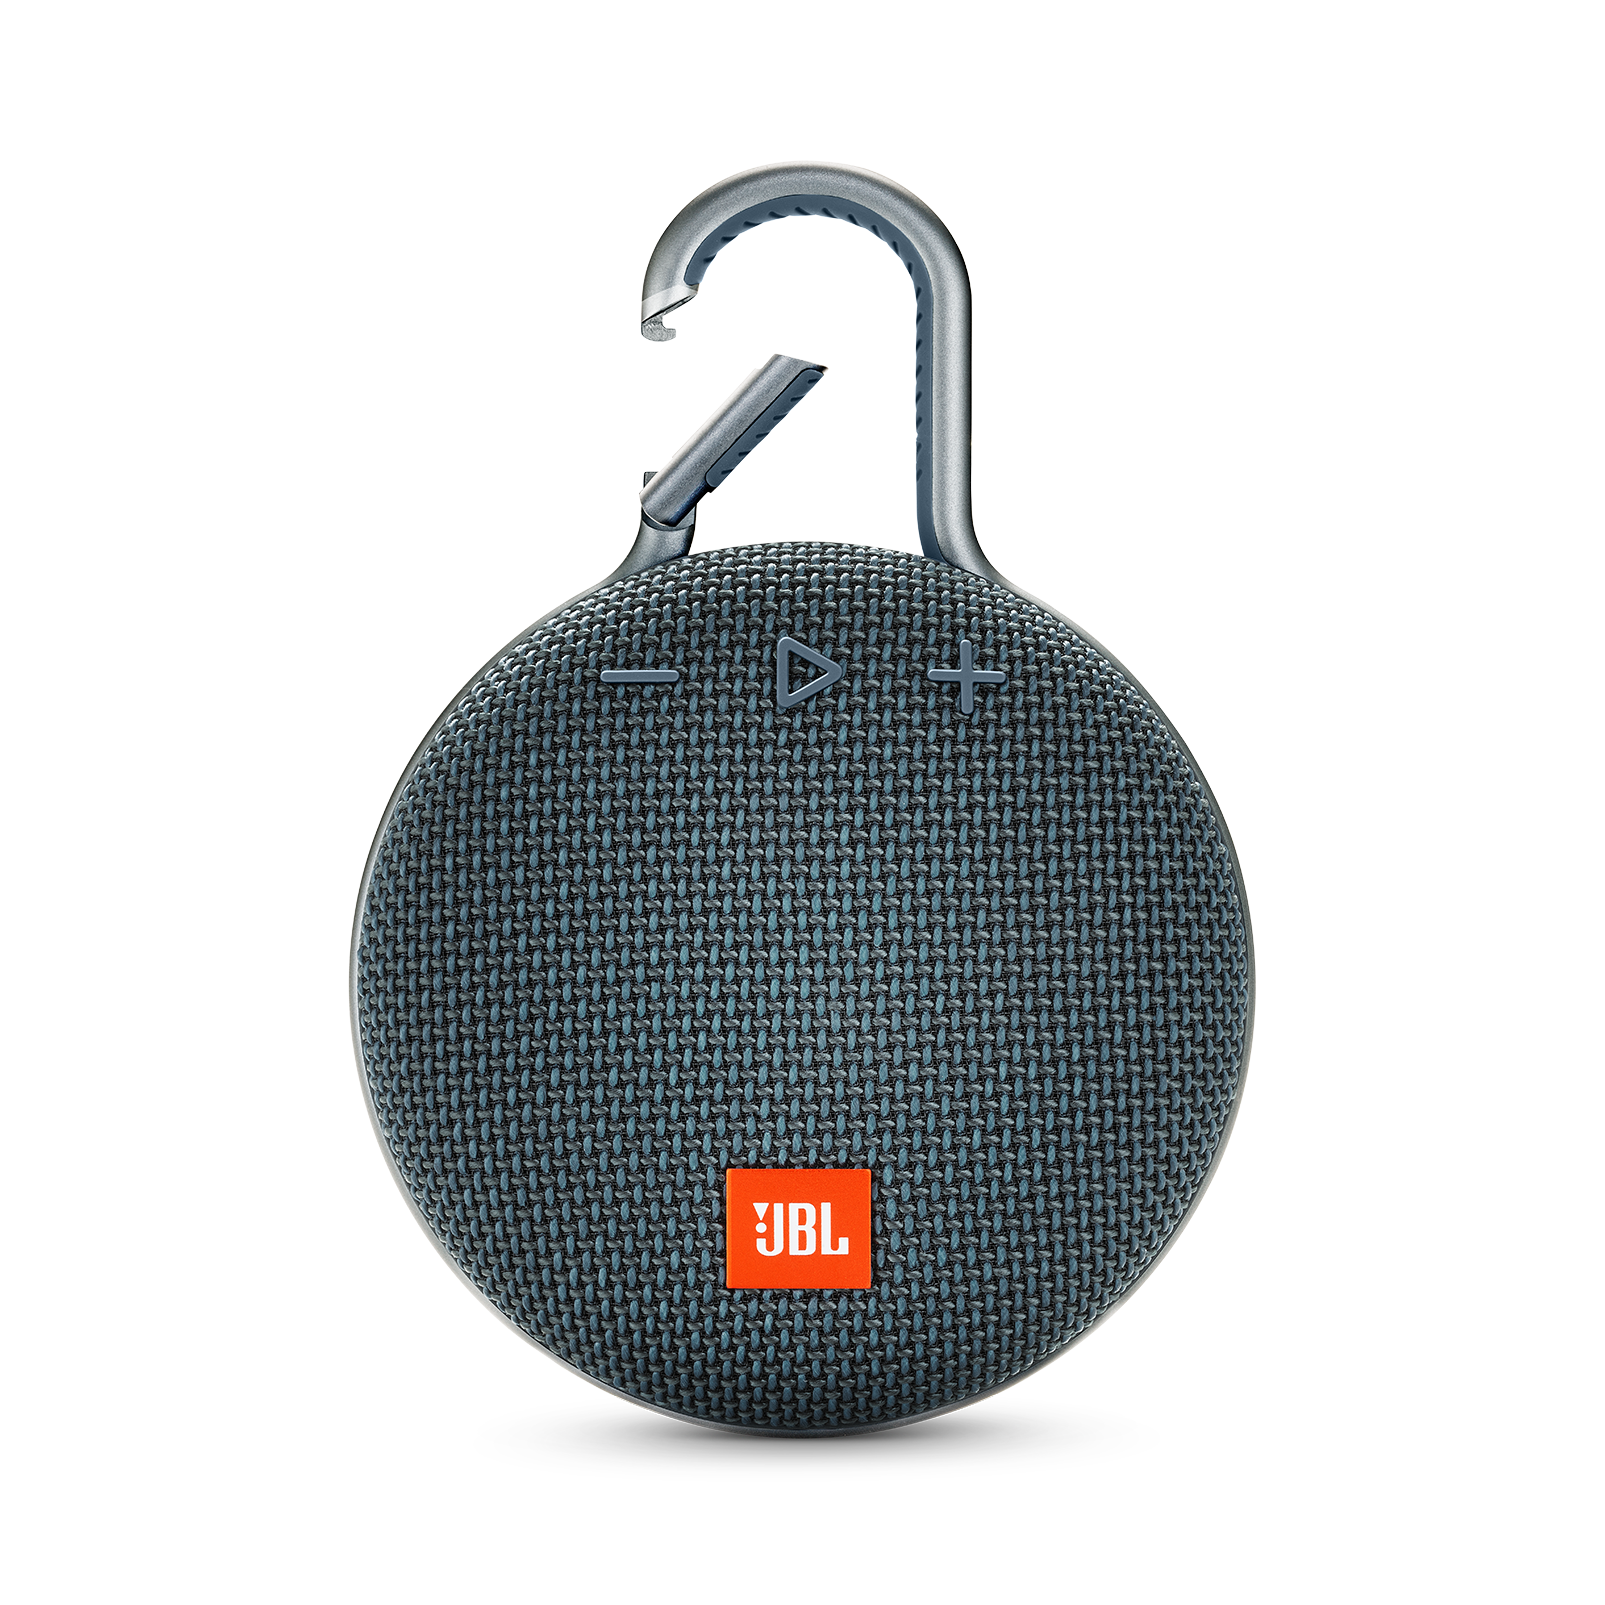 JBL CLIP 3 - Ocean Blue - Portable Bluetooth® speaker - Front